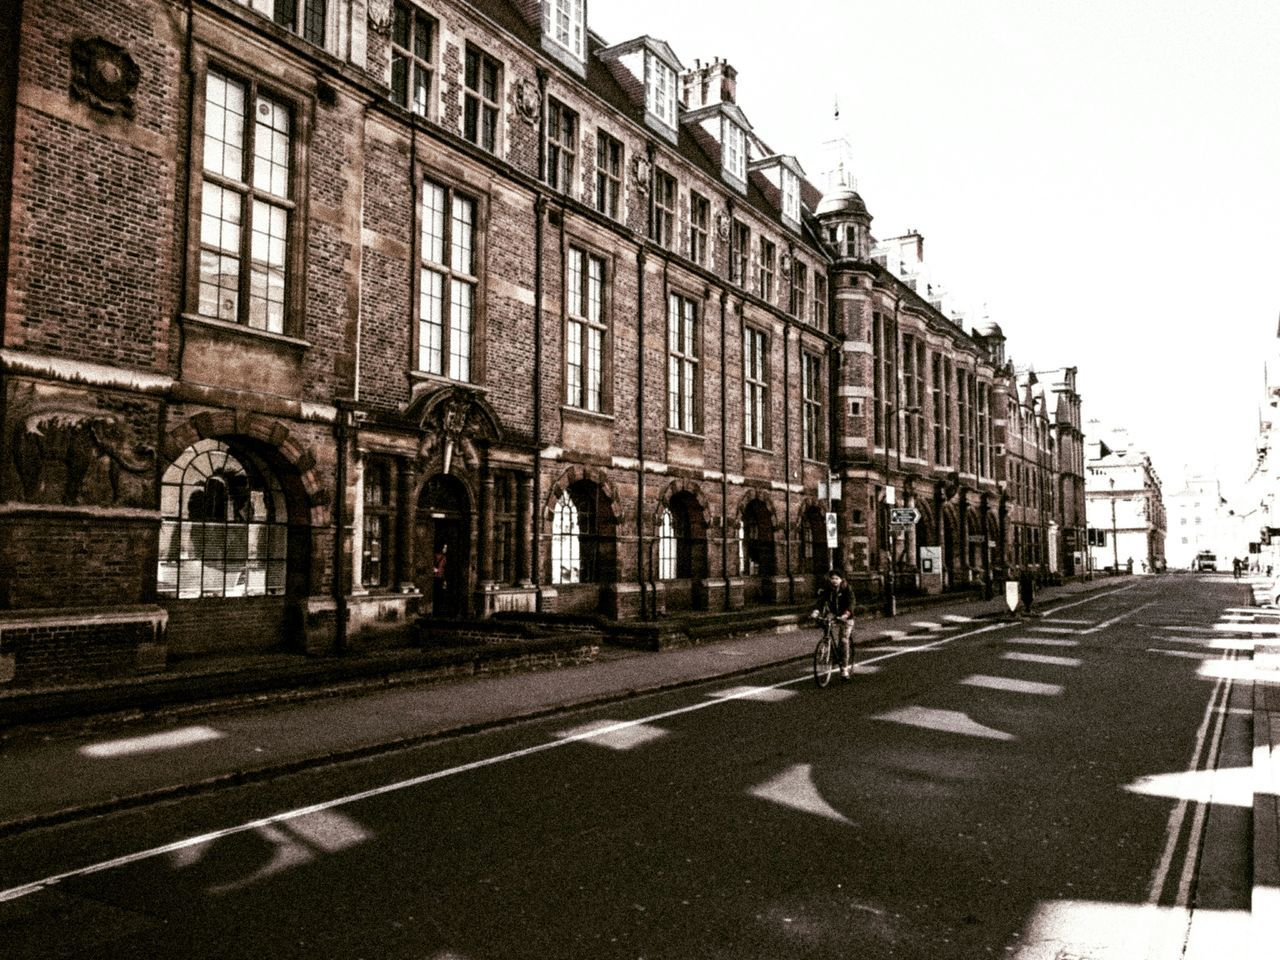 Retro Vintage Streetphotography Streetviewphotography Mobilephotography Manonabike Architecture Buildings Sunlight And Shadow Taking Photos